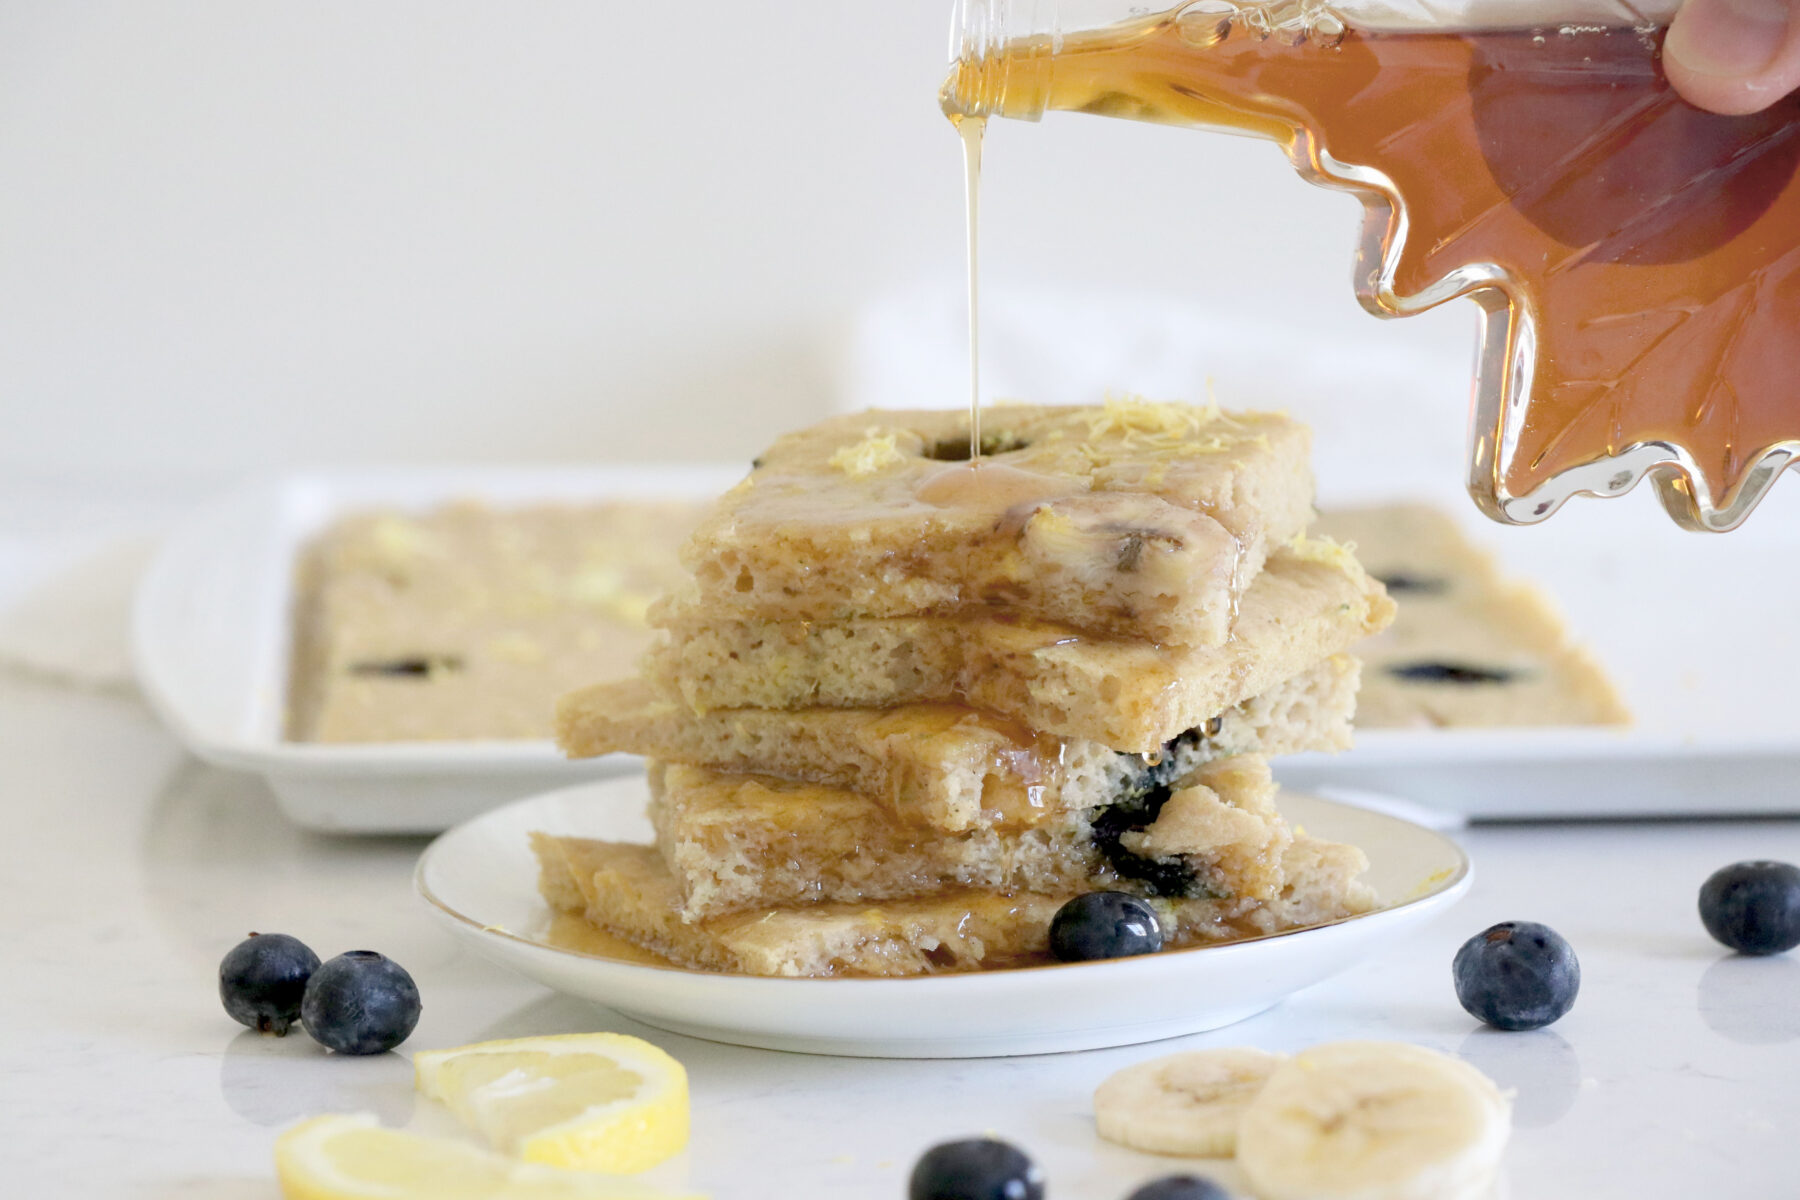 White plate with lemon blueberry pancakes and maple syrup being drizzled on top.